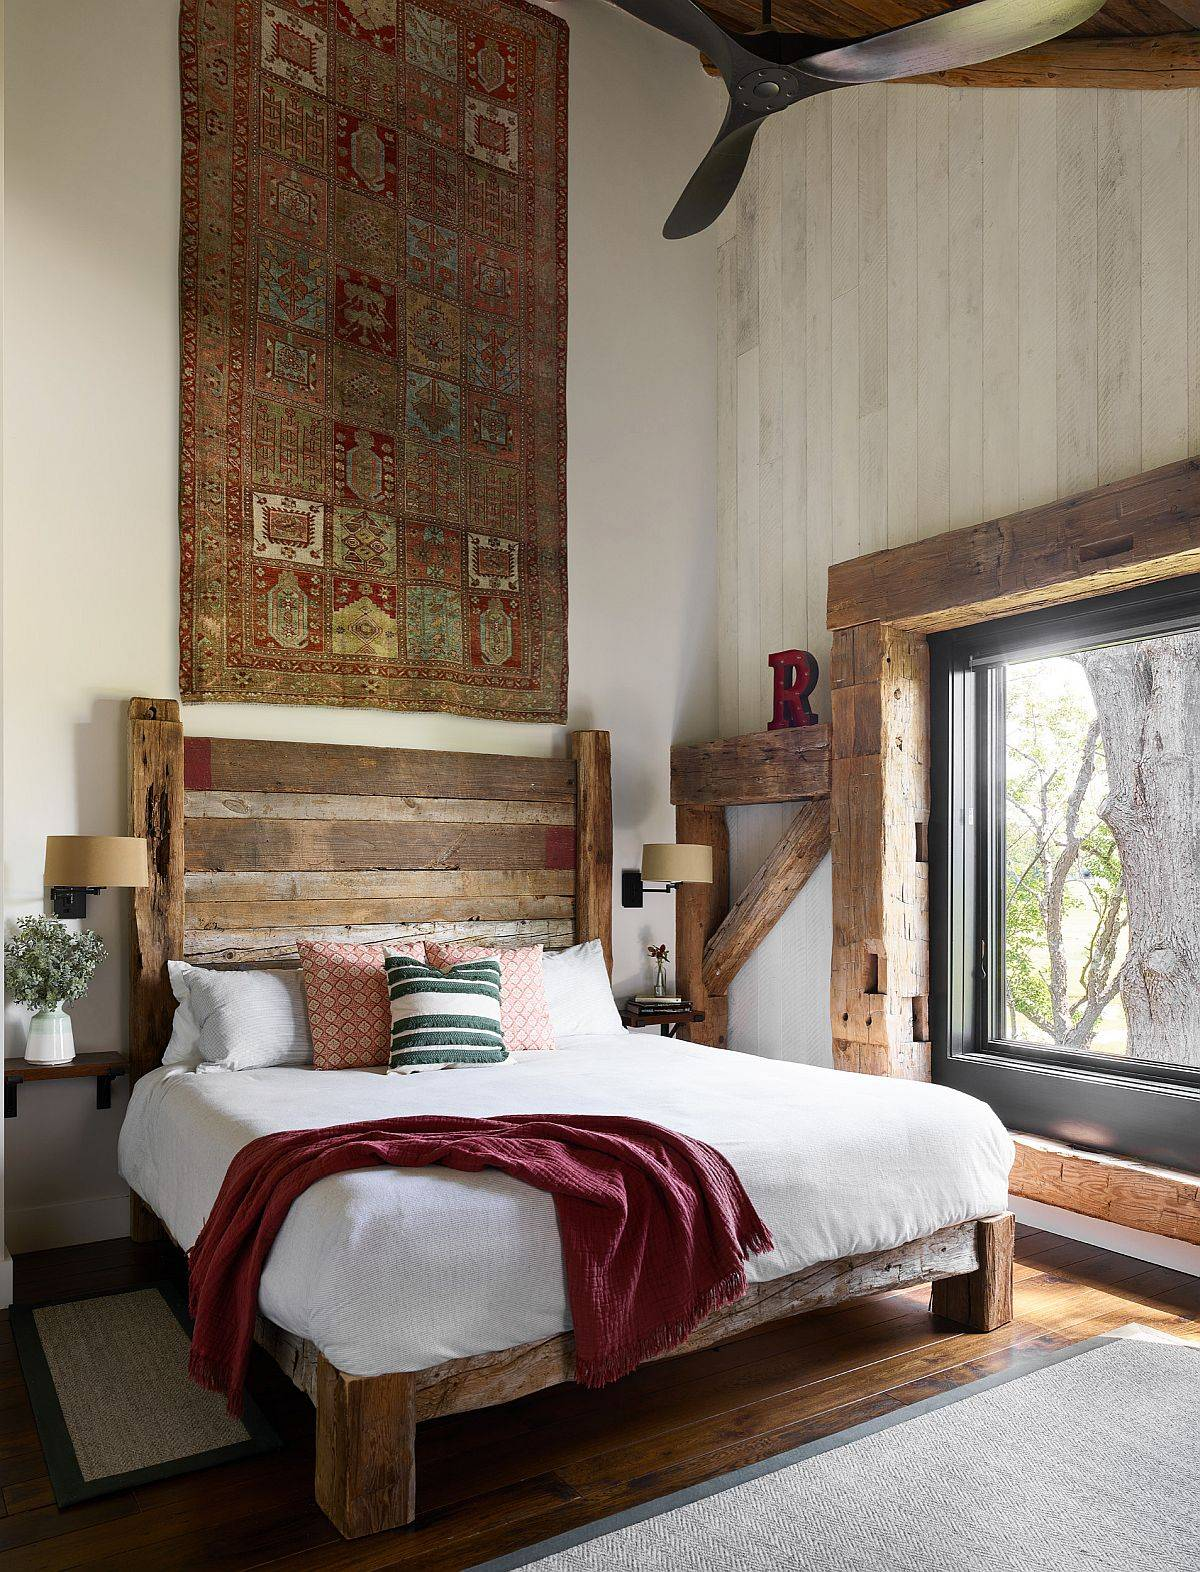 Rustic-style-bedrooms-are-both-cozy-and-rugged-at-the-same-time-65802